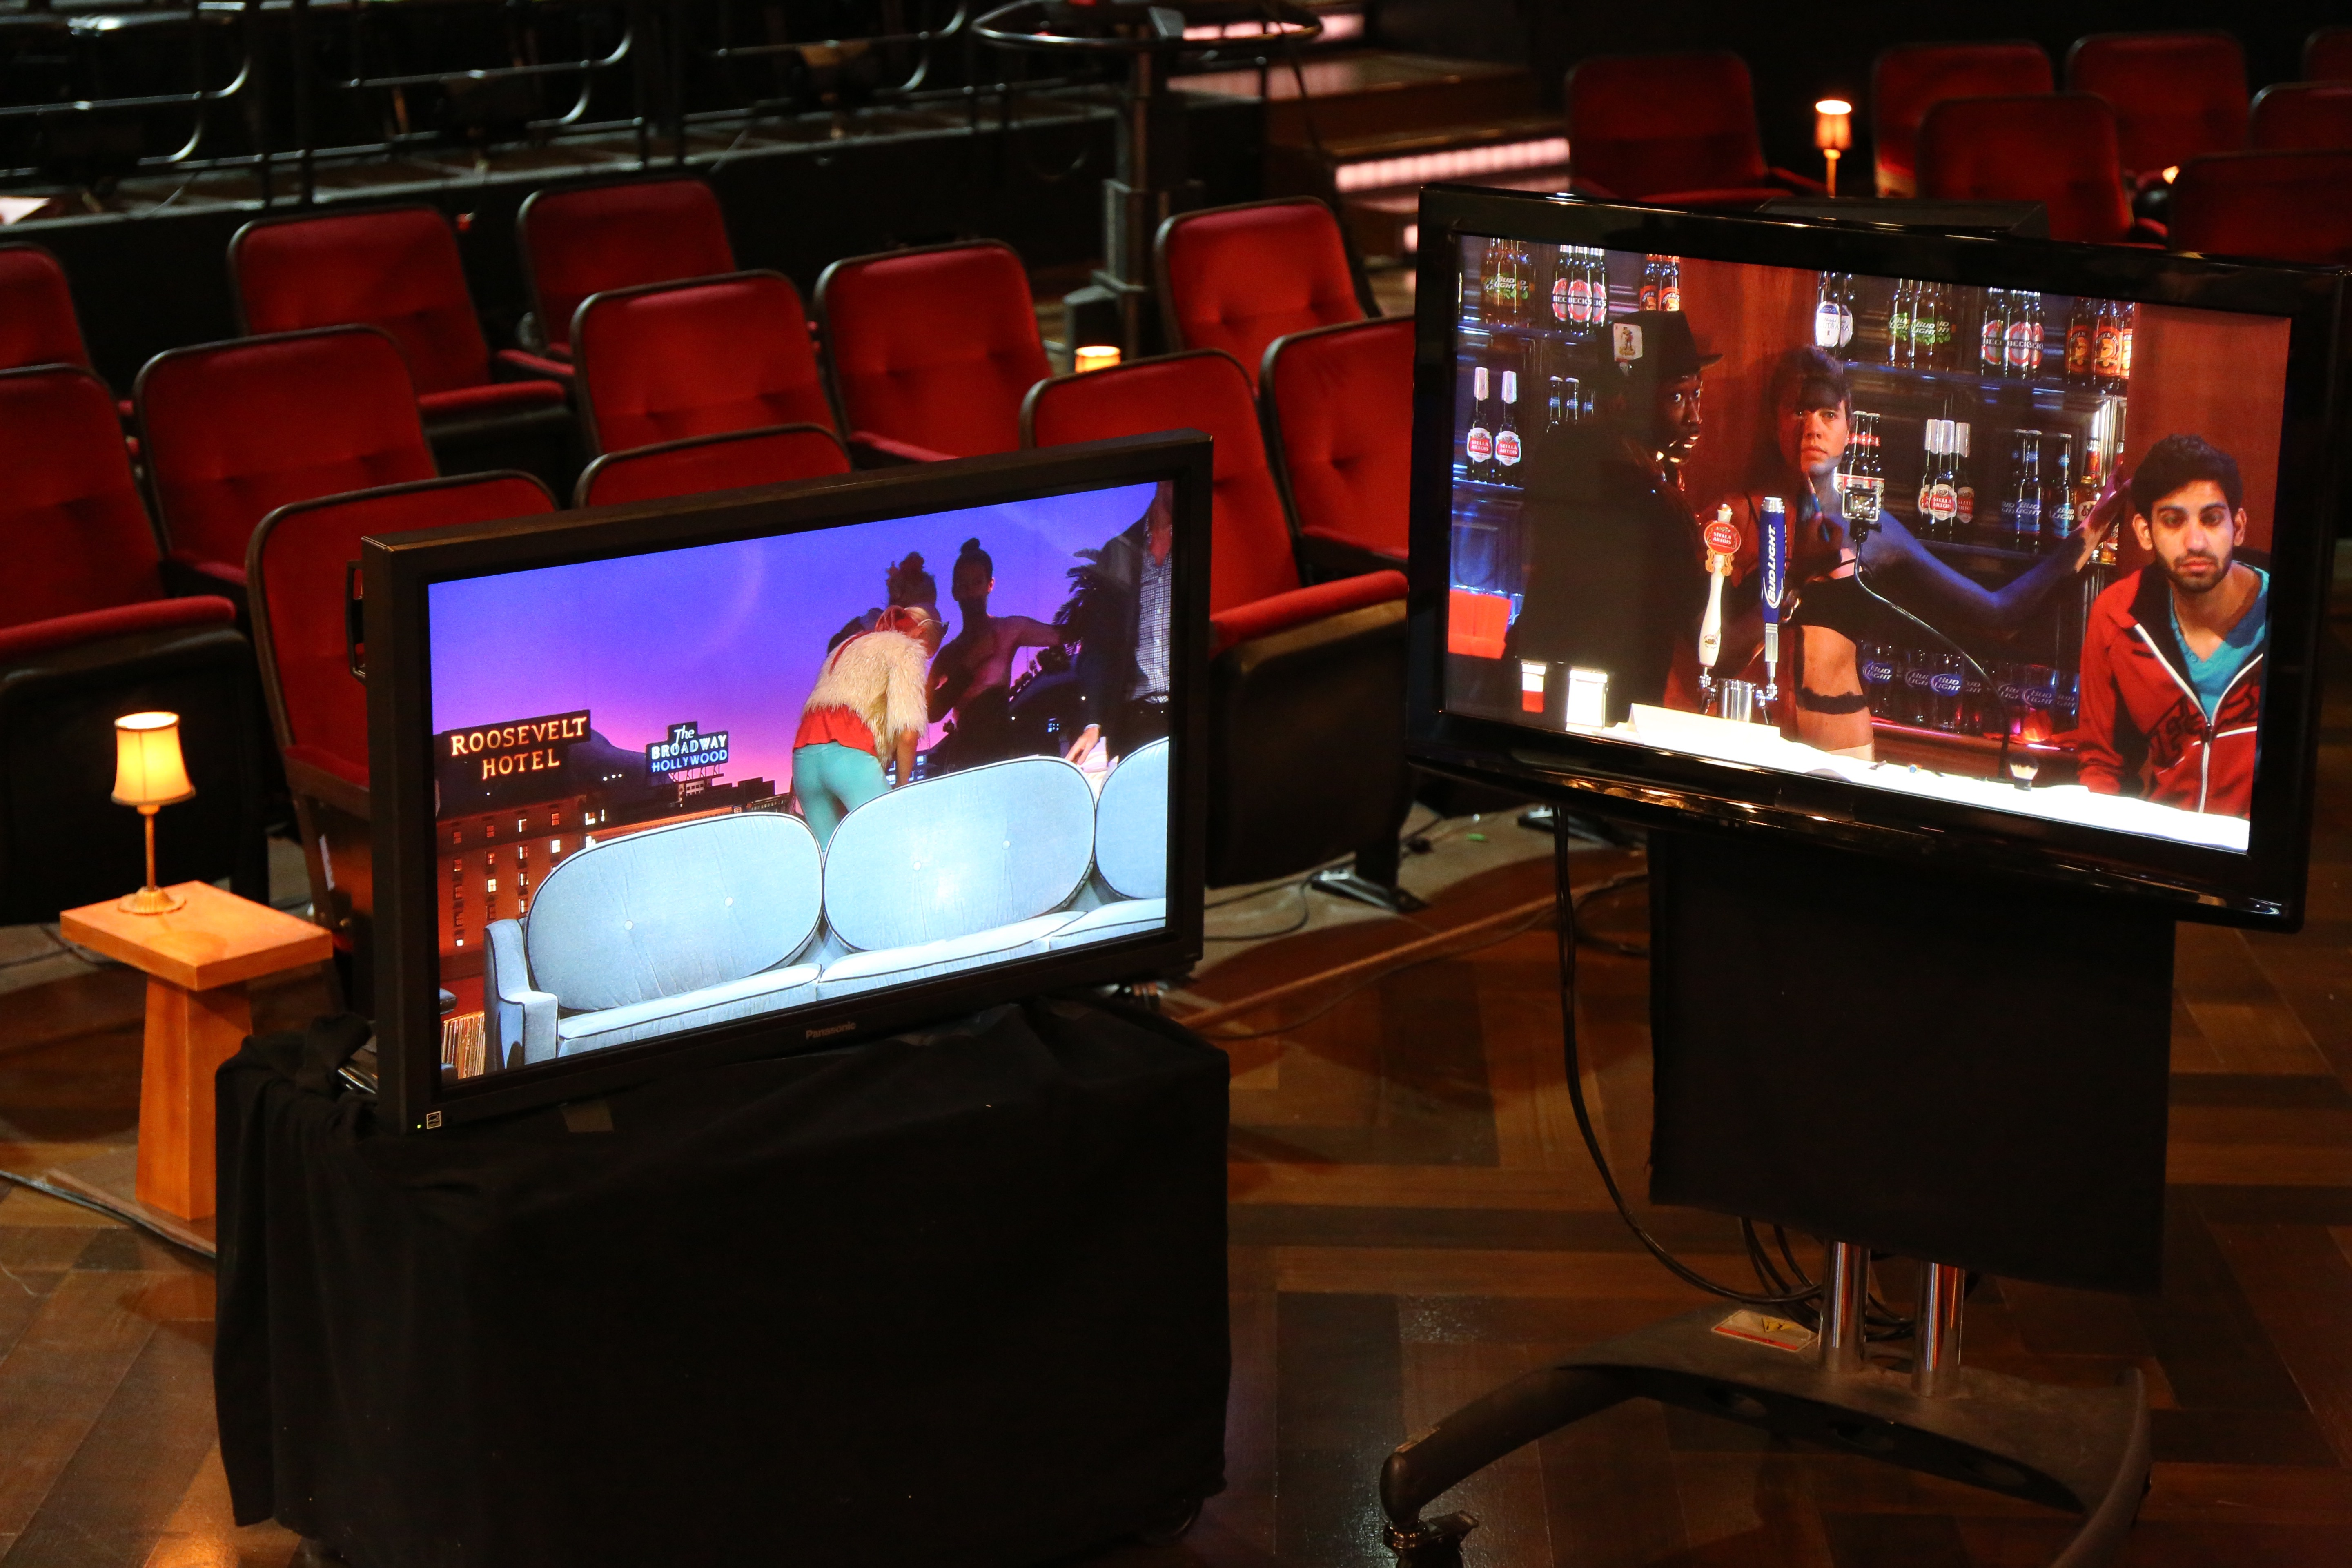 The beginning of what the audience will see on the monitors.